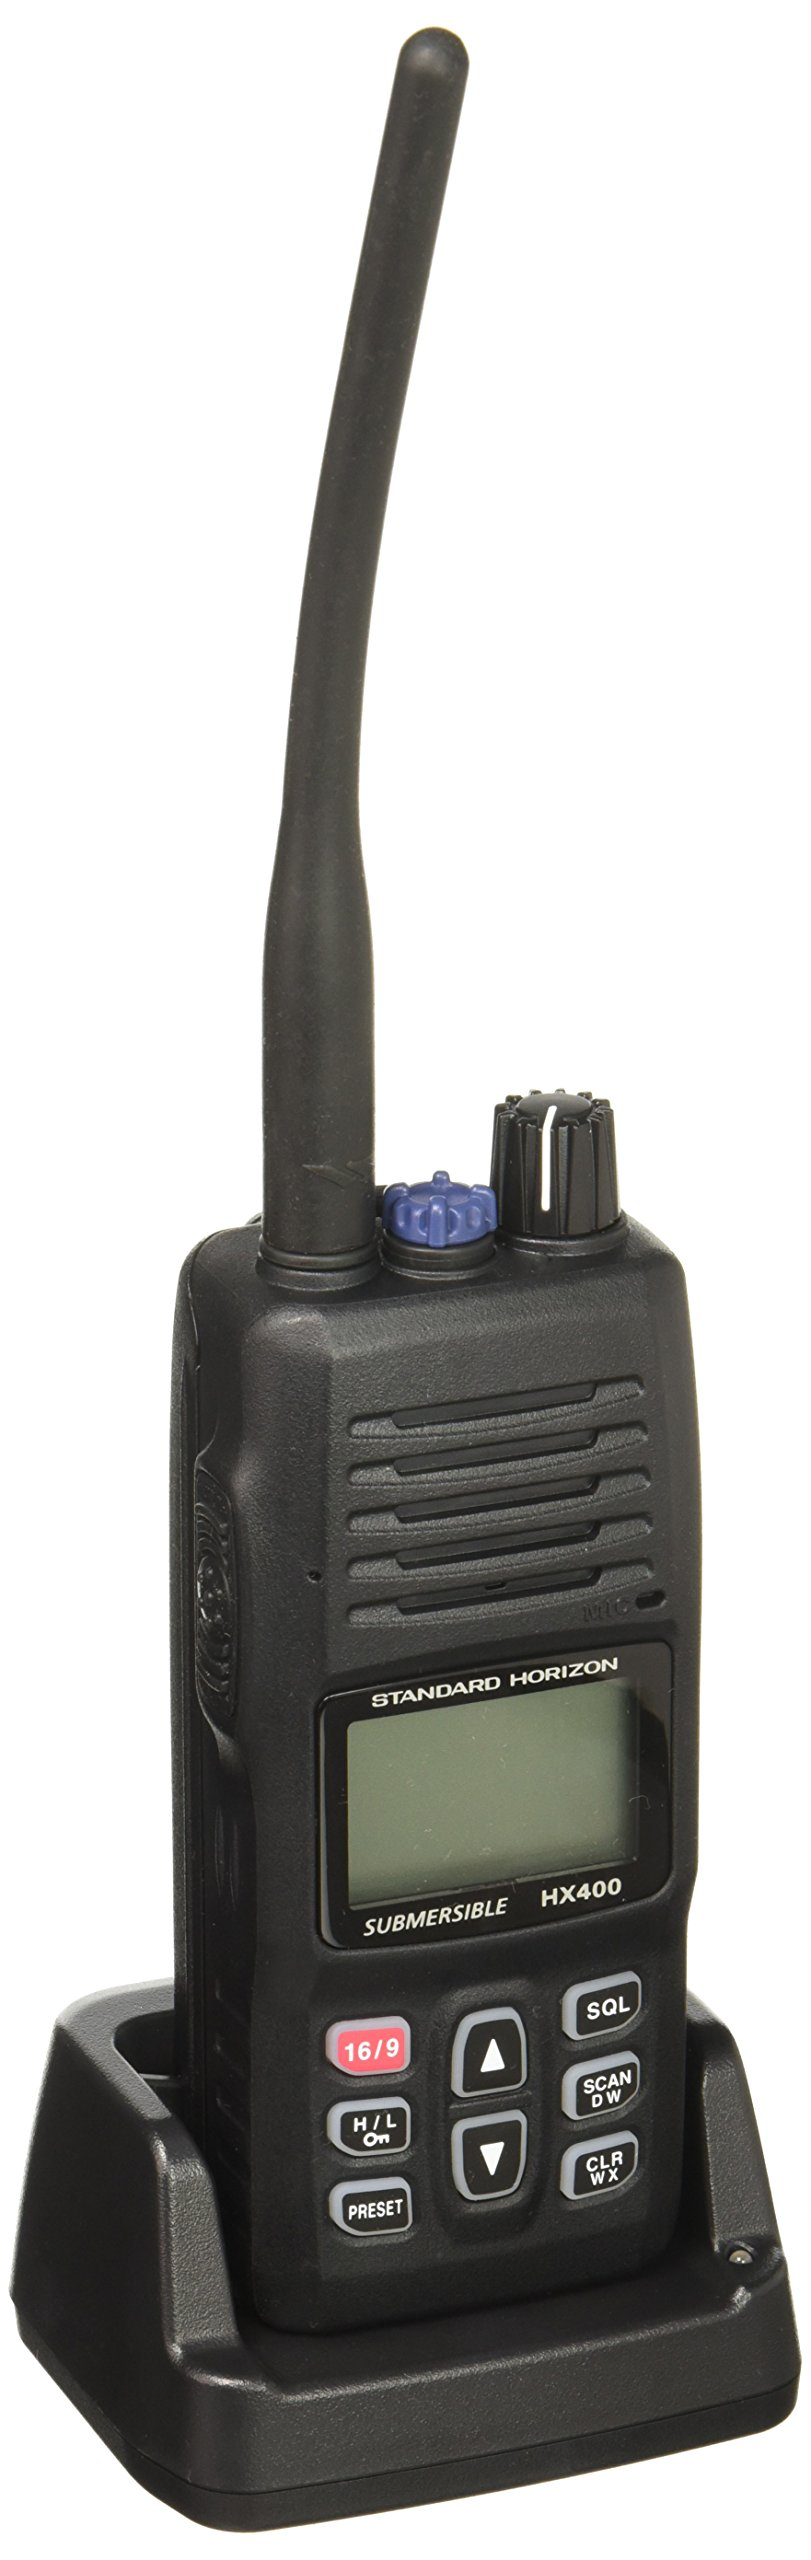 Standard Horizon HX400IS Intrinsically Safe Handheld VHF Radio by Standard Horizon (Image #1)